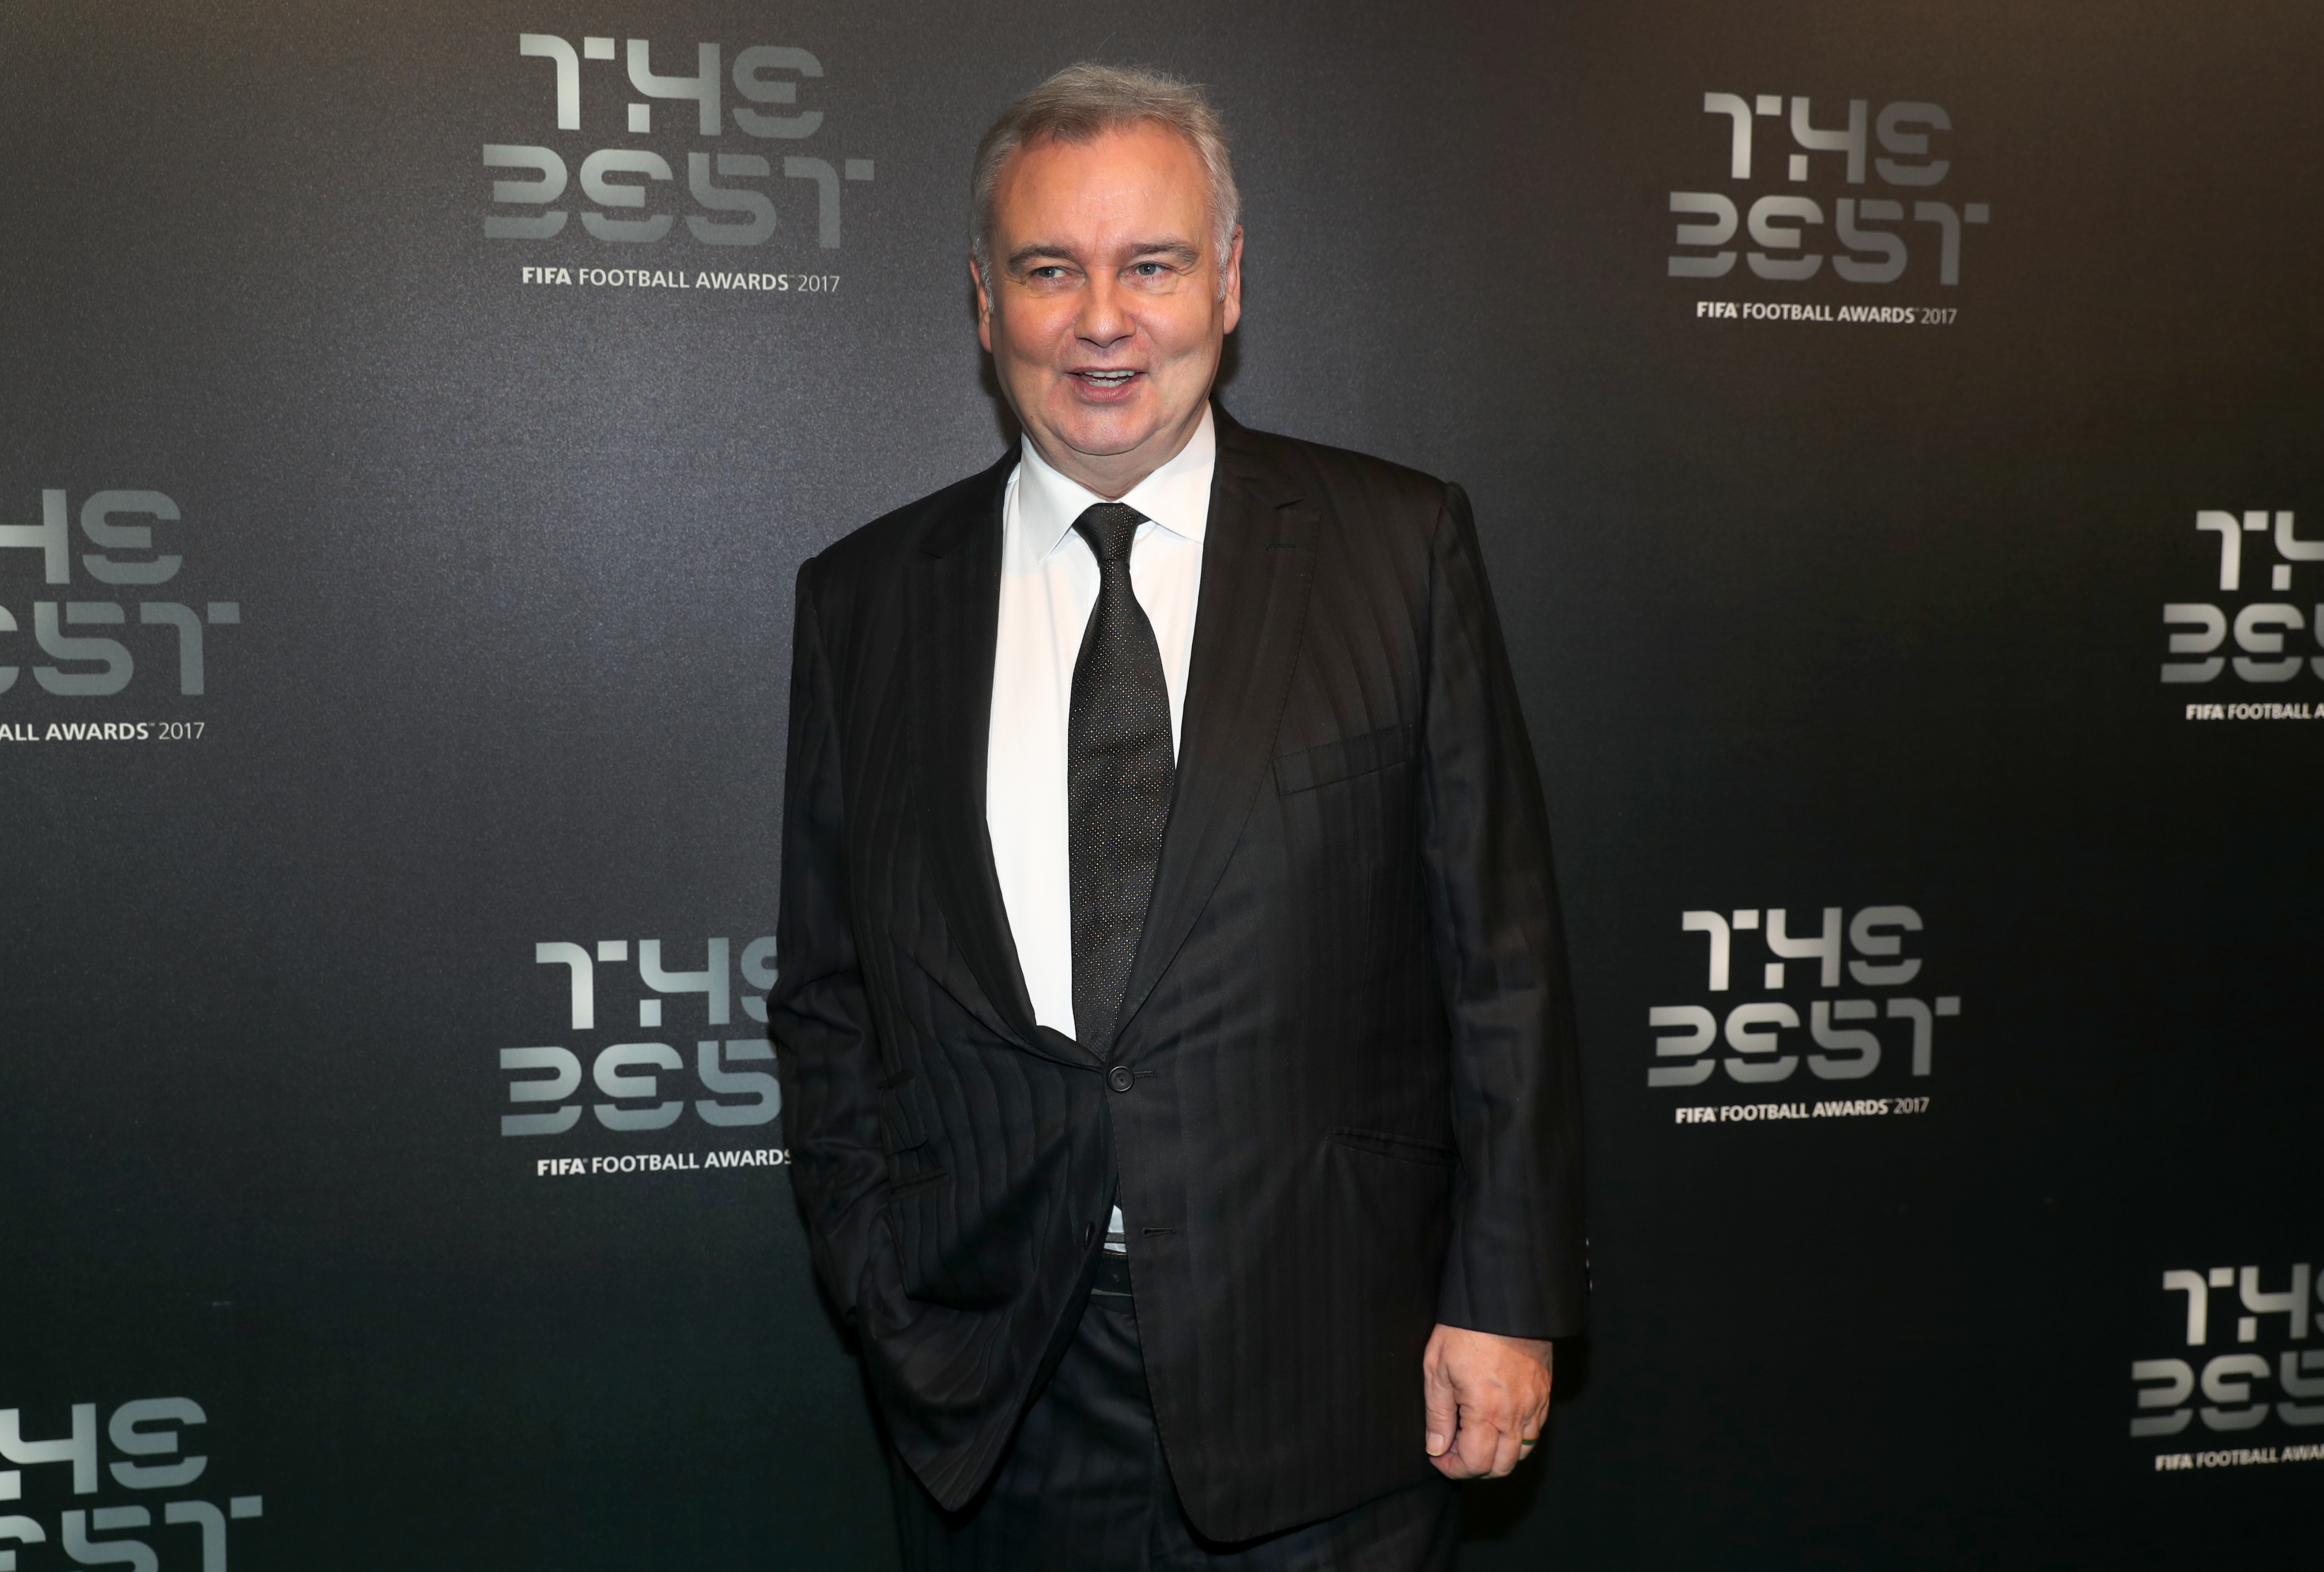 Eamonn Holmes during the Best FIFA Football Awards 2017 at the Palladium Theatre, London.